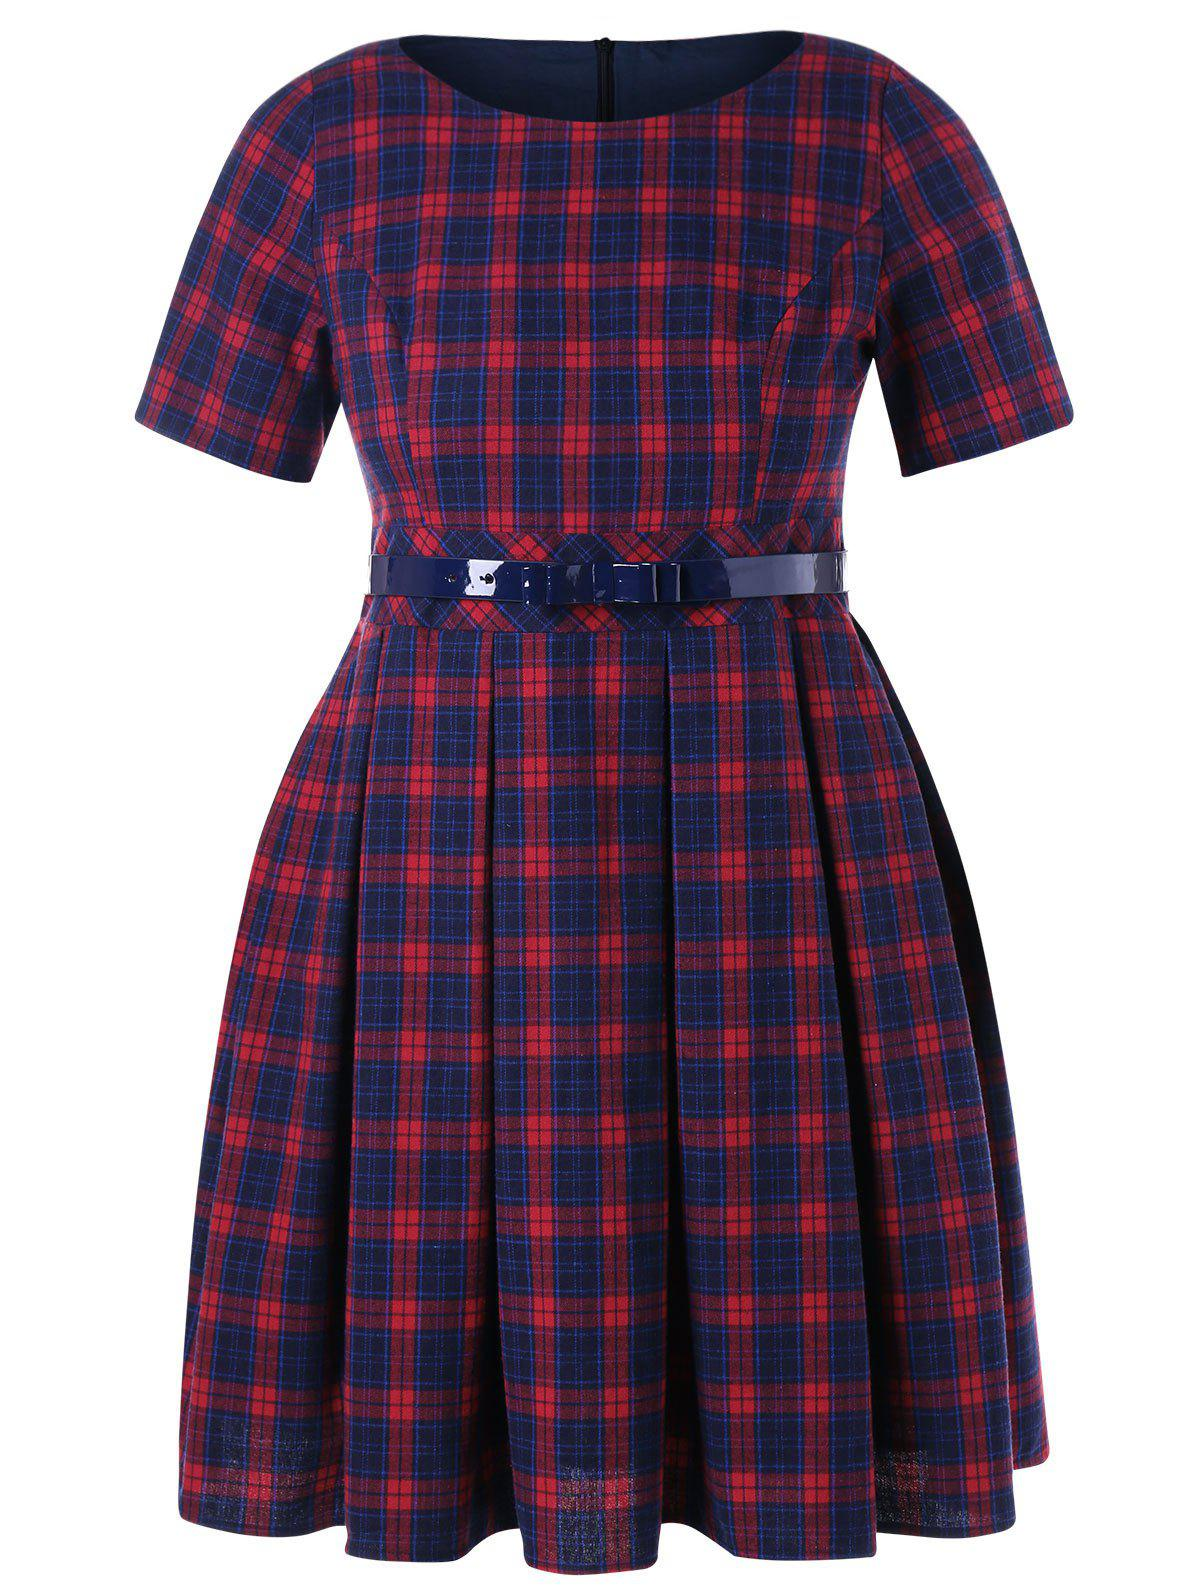 Shop Plaid Print Plus Size Fit and Flare Dress